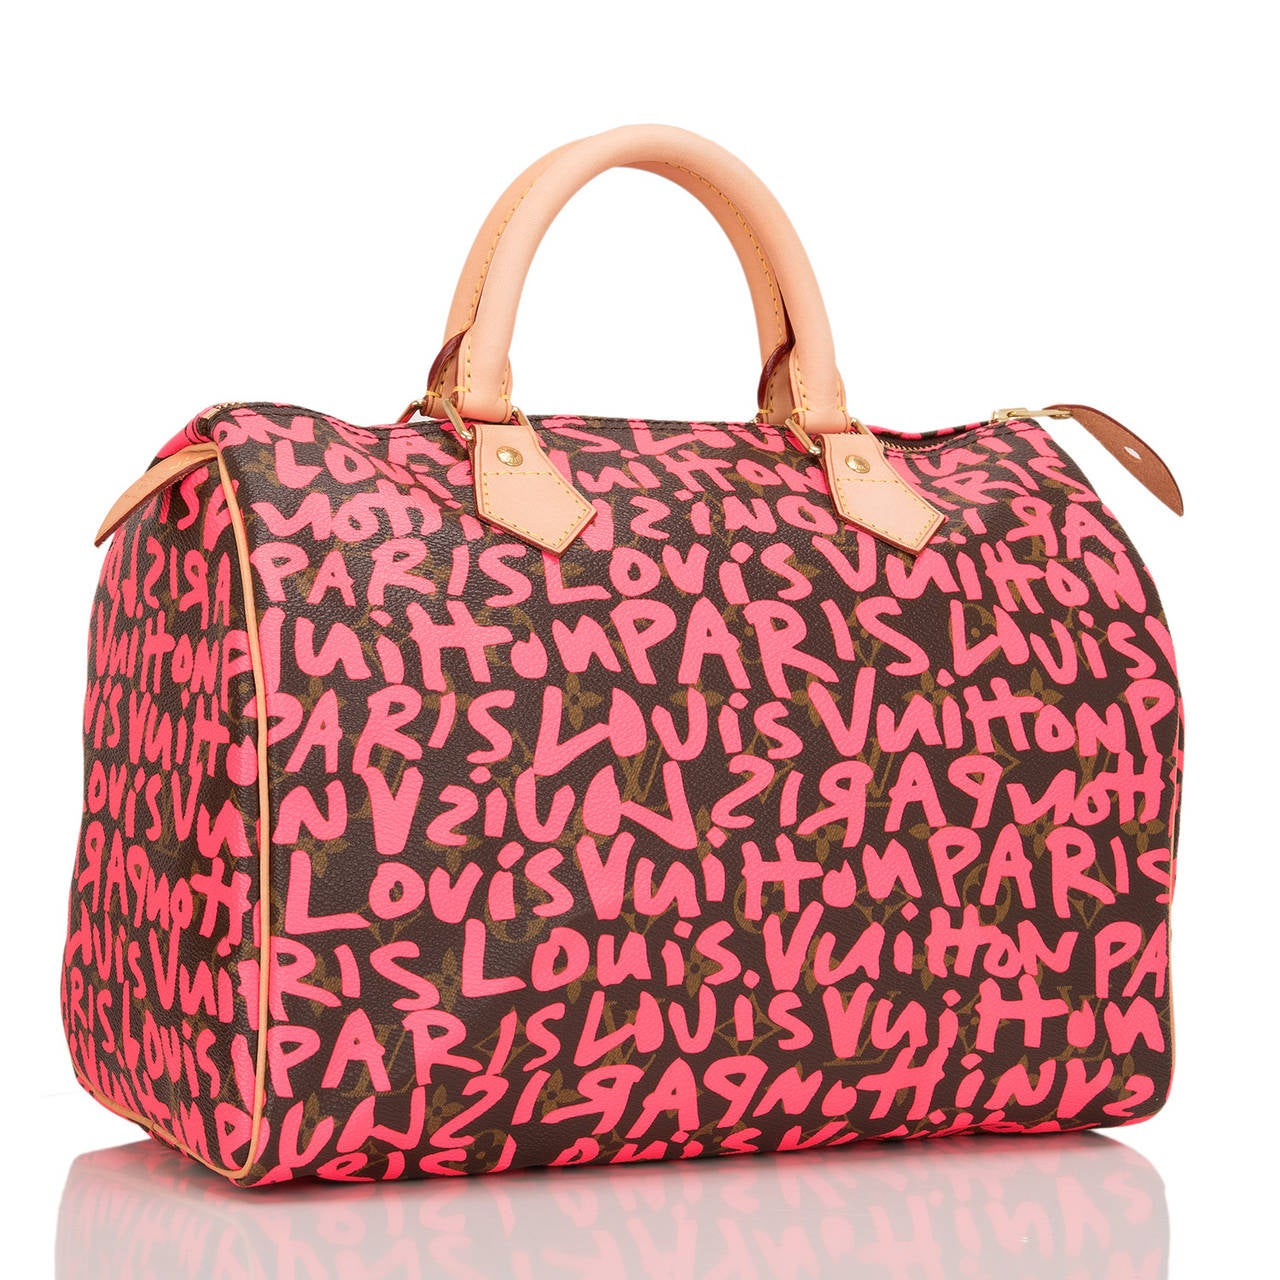 """Louis Vuitton limited edition Stephen Sprouse Monogram Graffiti Speedy 30 of coated canvas with all over """"Louis Vuitton Paris"""" in neon fuchsia pink.  This bag features bright pink lettering silk screened over Louis Vuitton classic Monogram"""